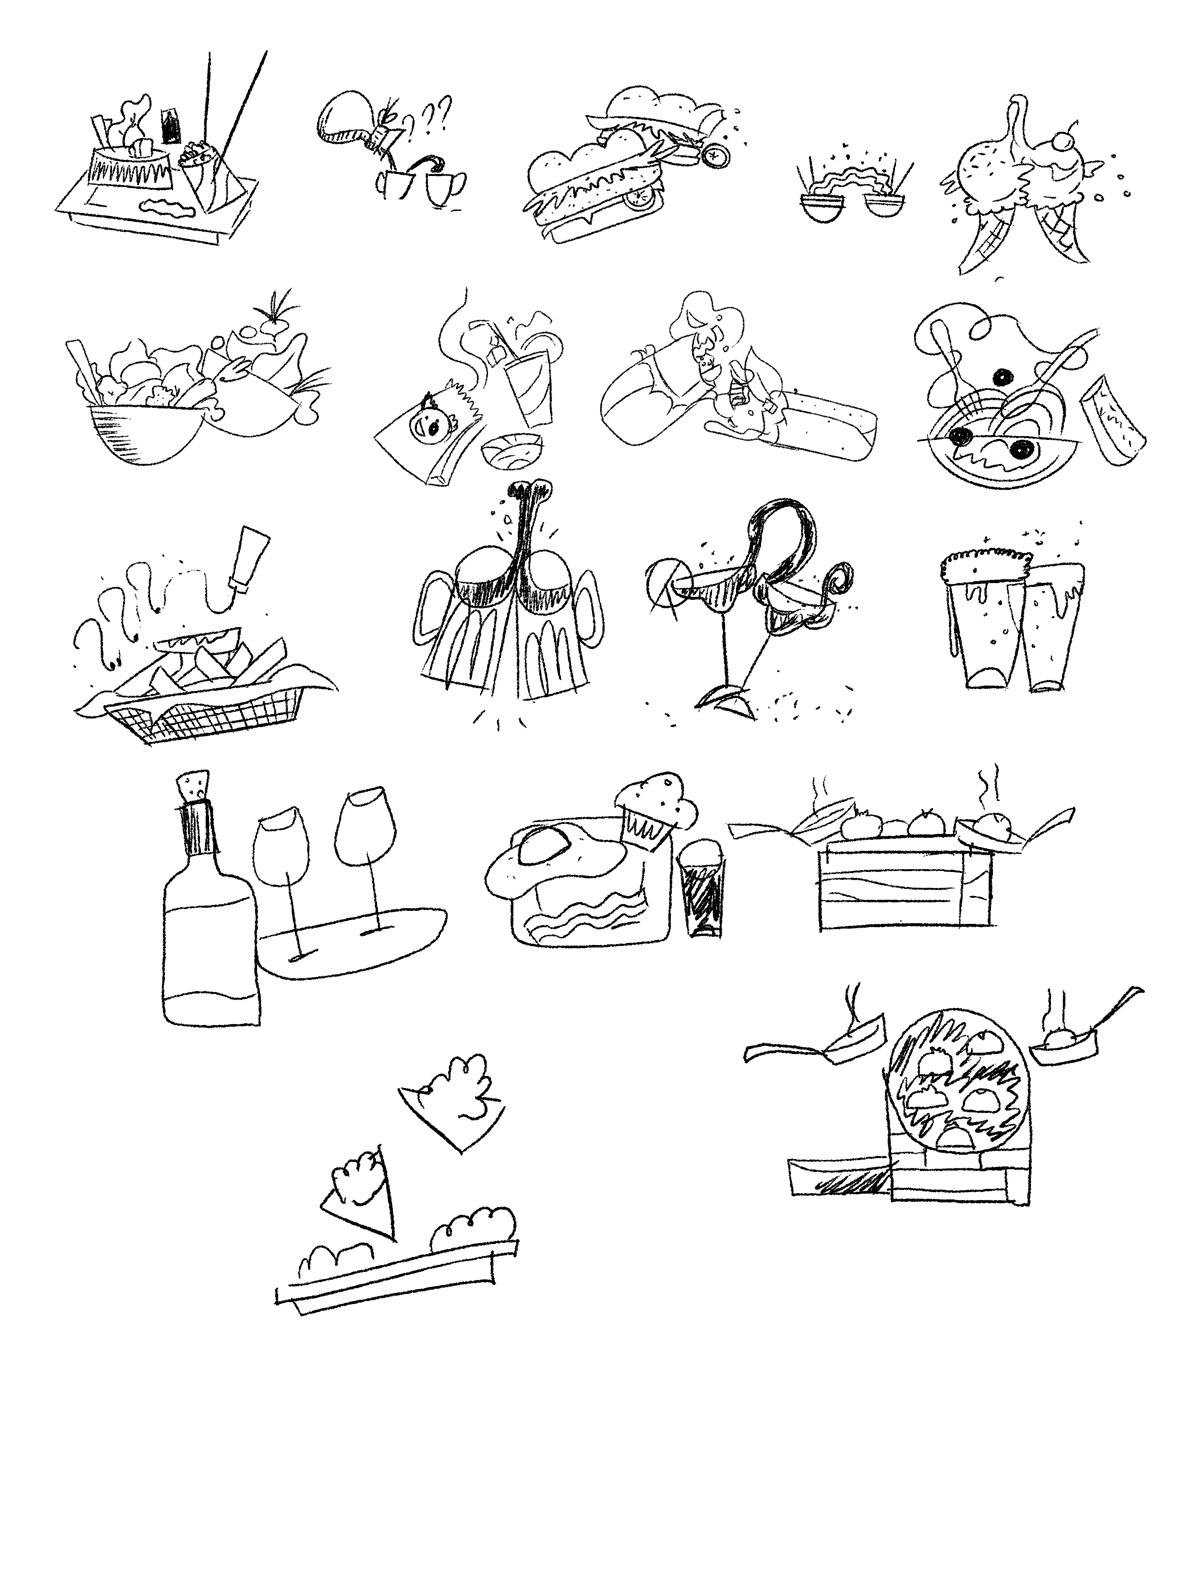 hungry-sketches-1.jpg